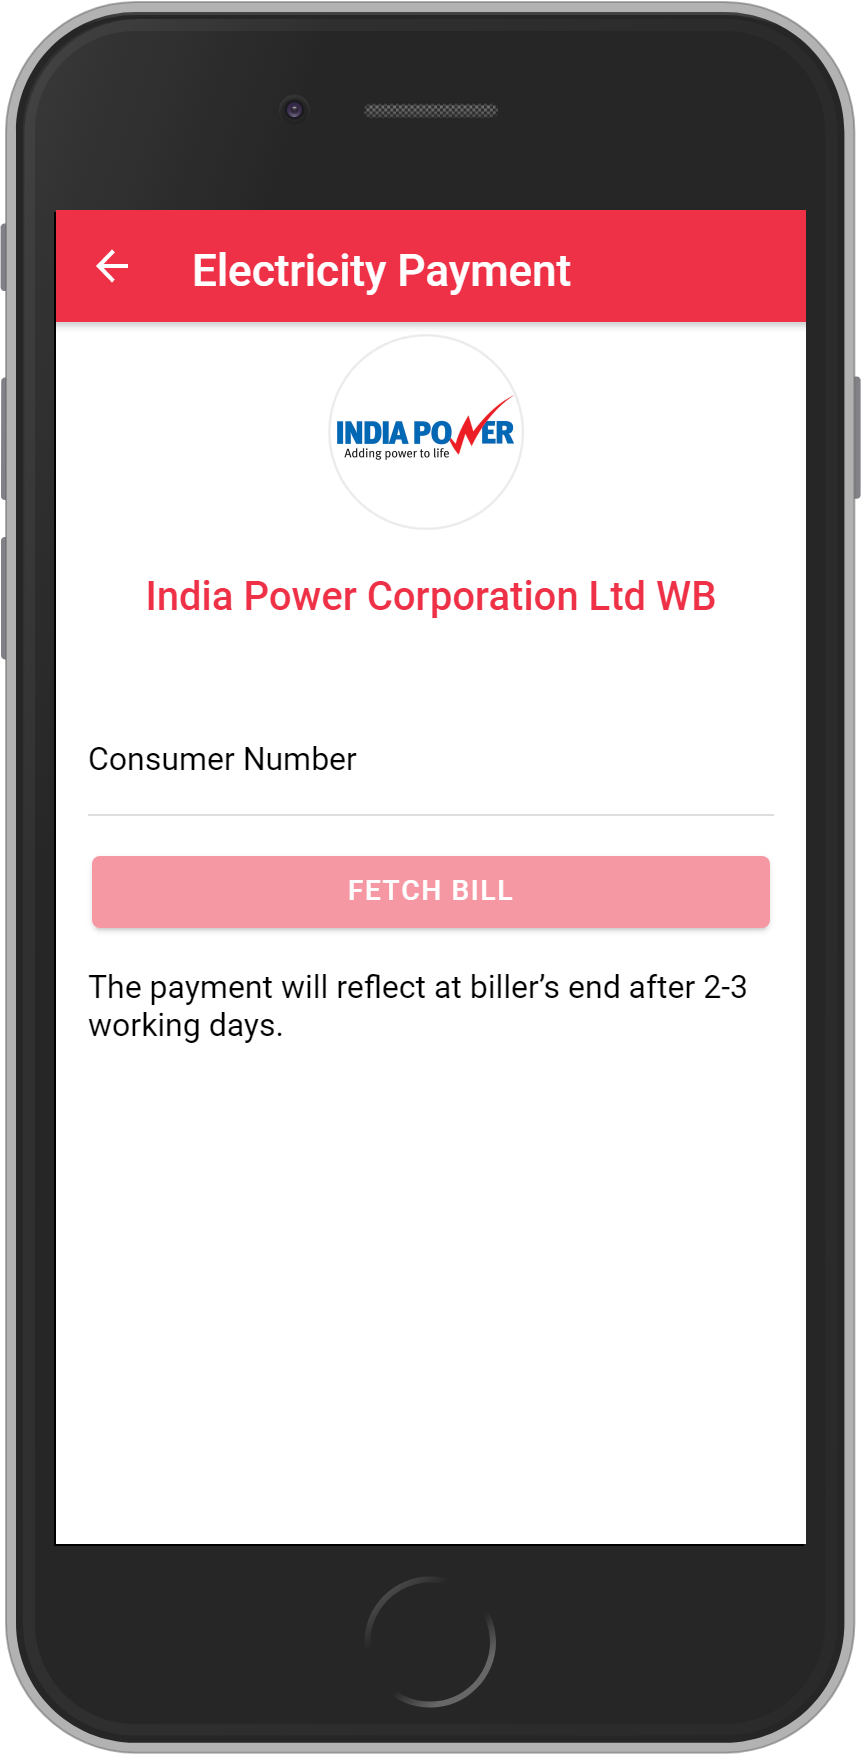 Get UNLIMITED <b>0.1%</b> CASHBACK on India Power Corporation Ltd WB Bill Payment.